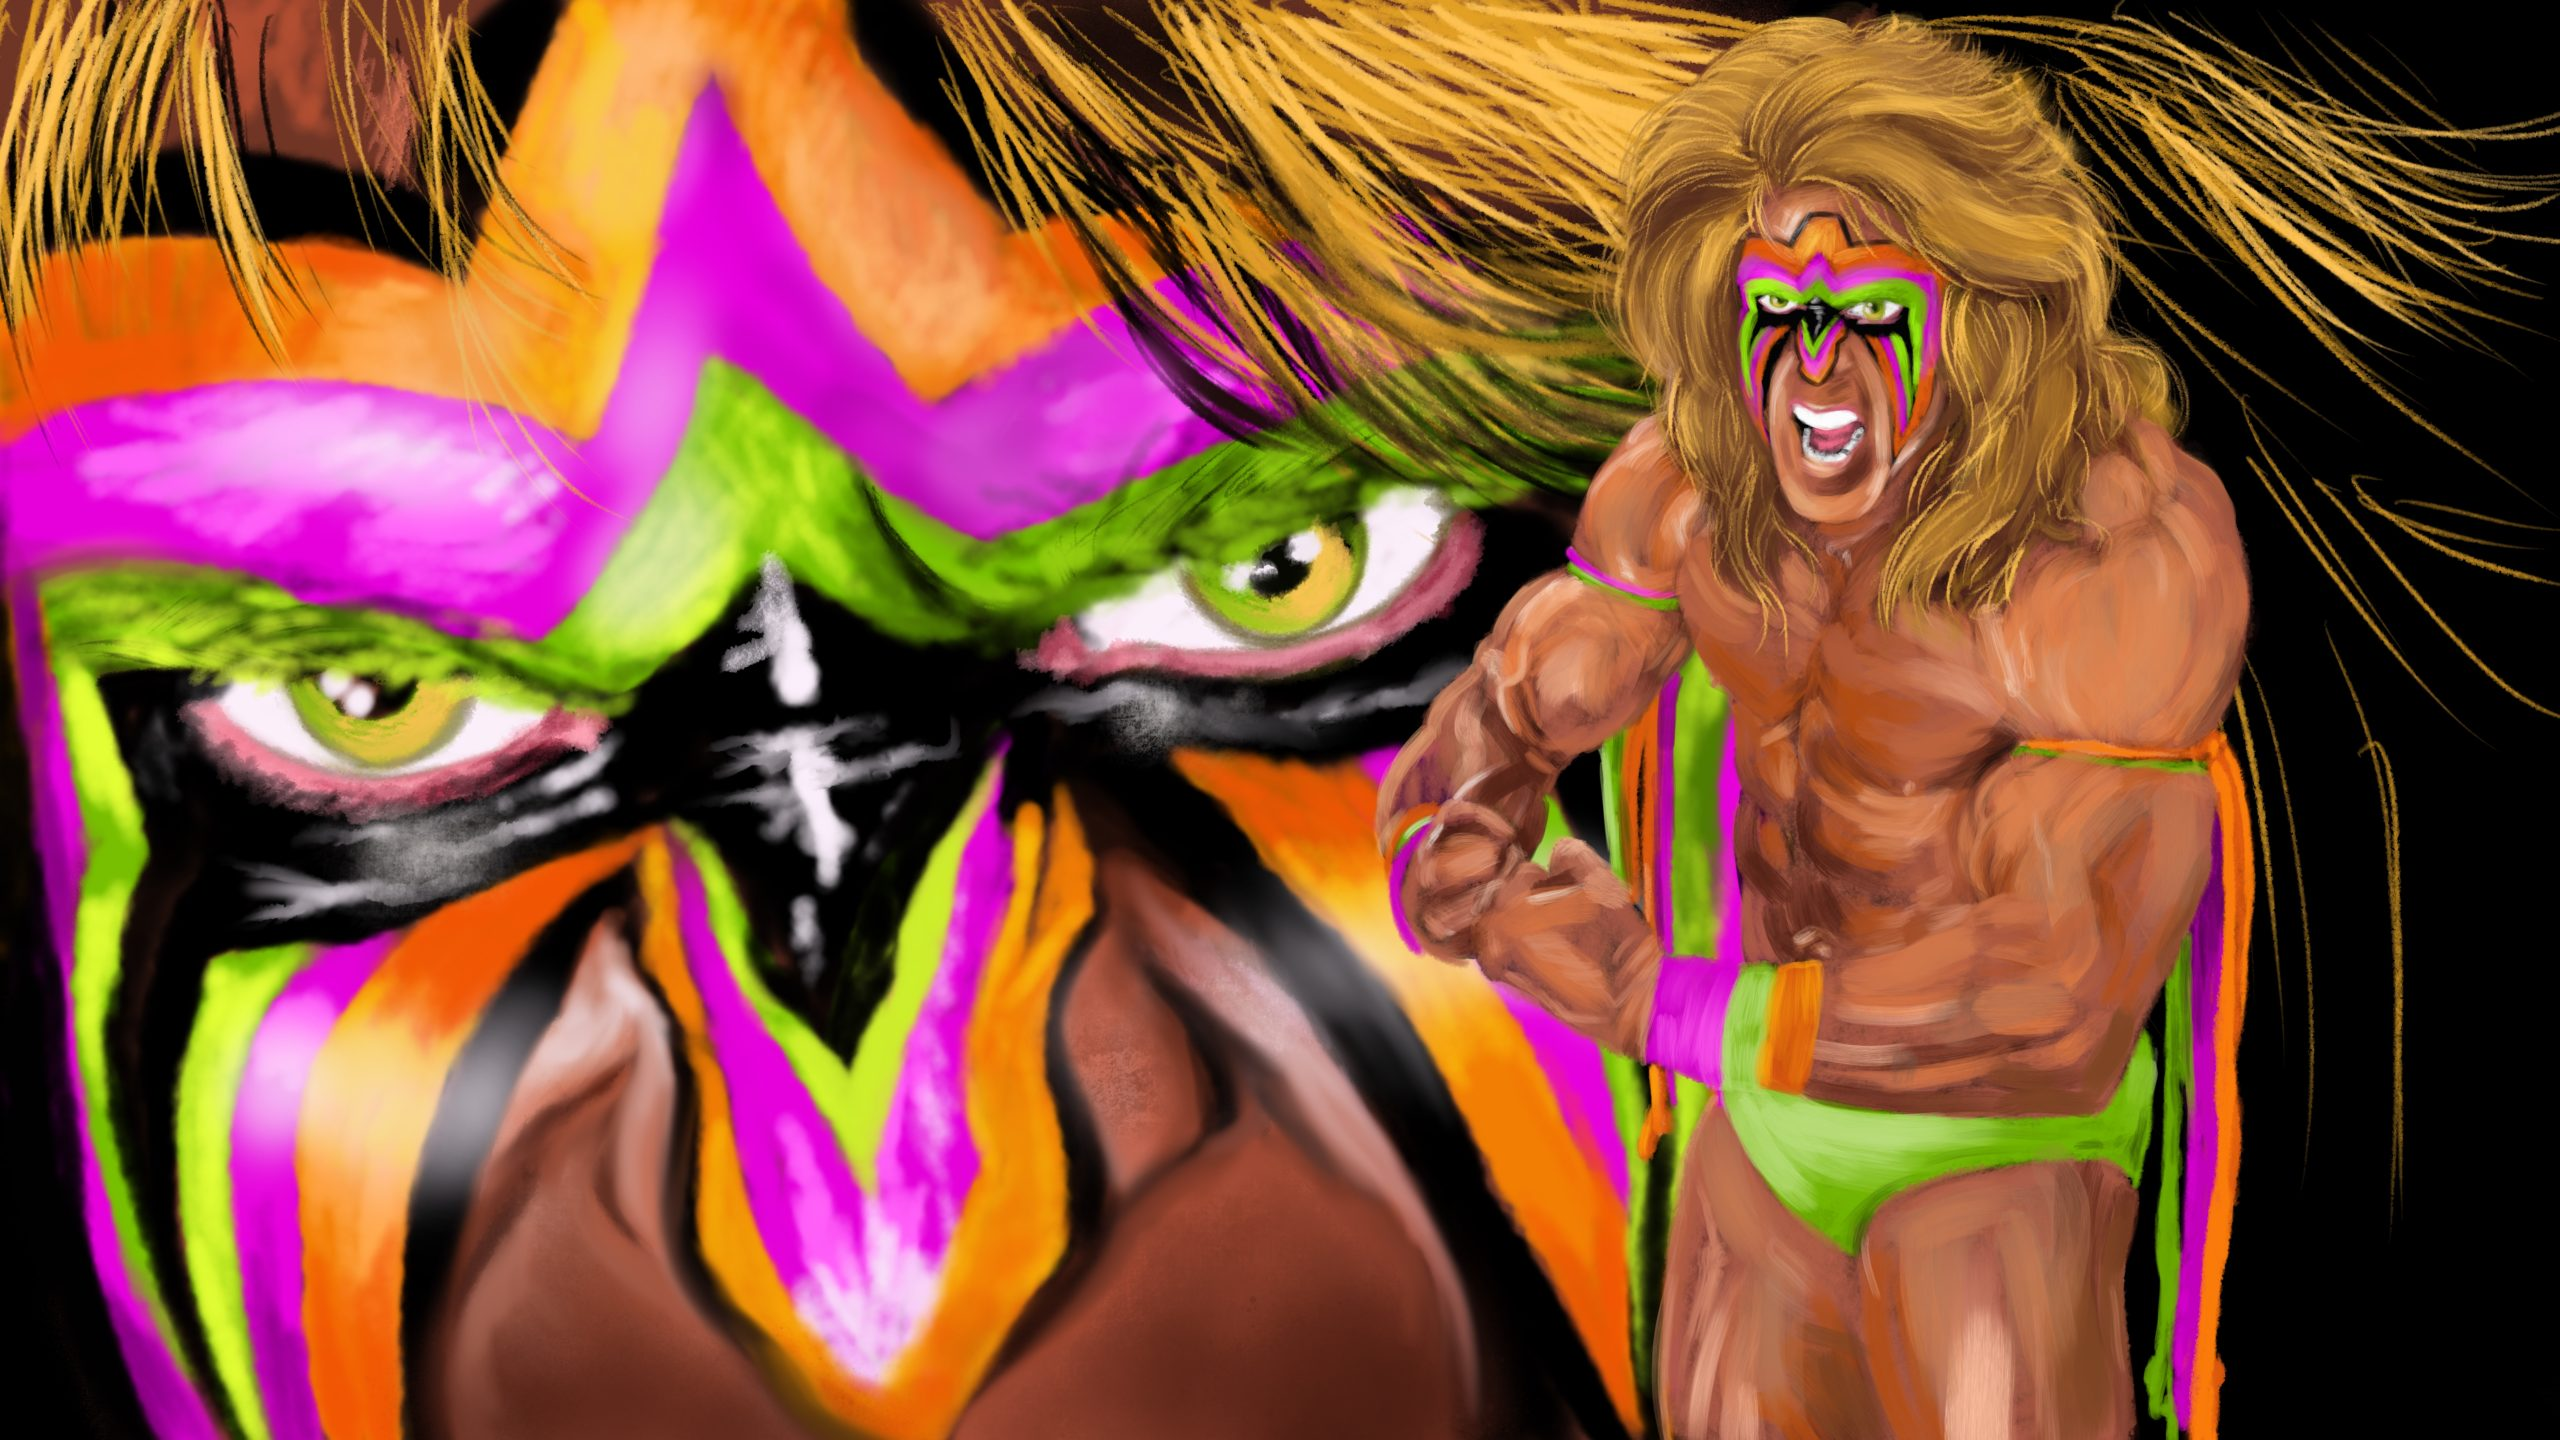 The Ultimate Warrior: WWE Wrestling Procreate Painting Tutorial – Part 2